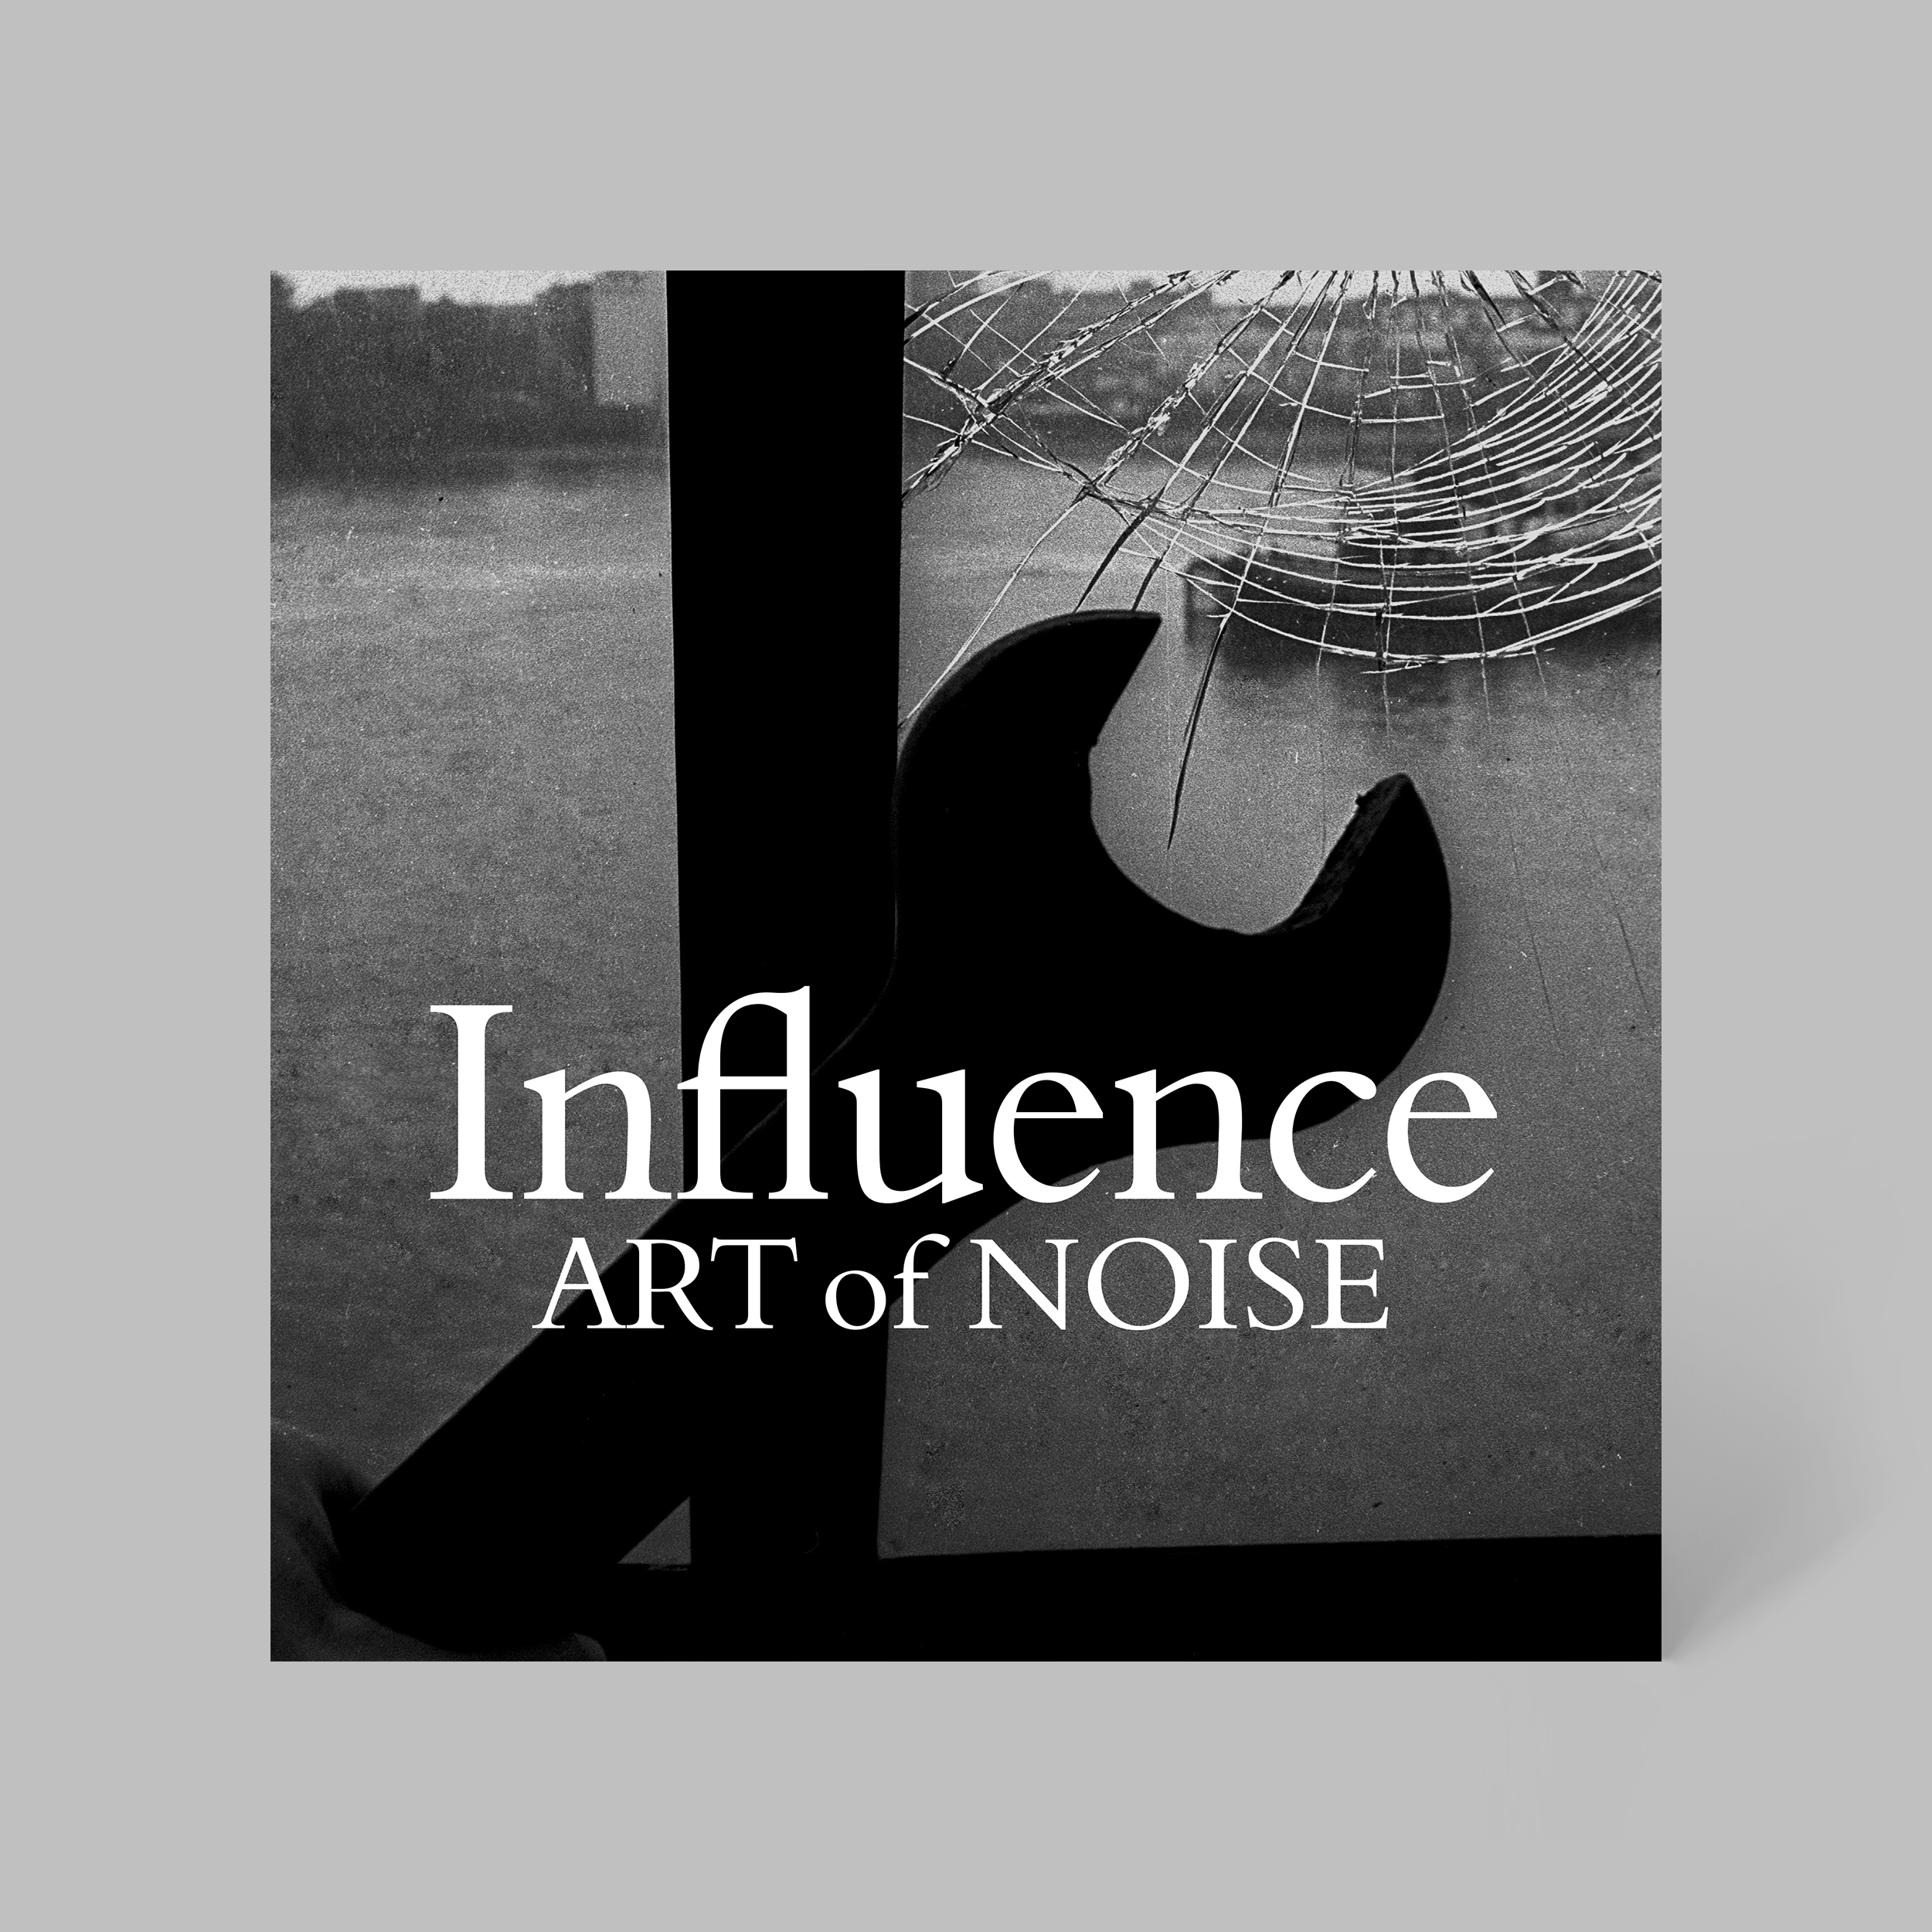 The Art of Noise Influence